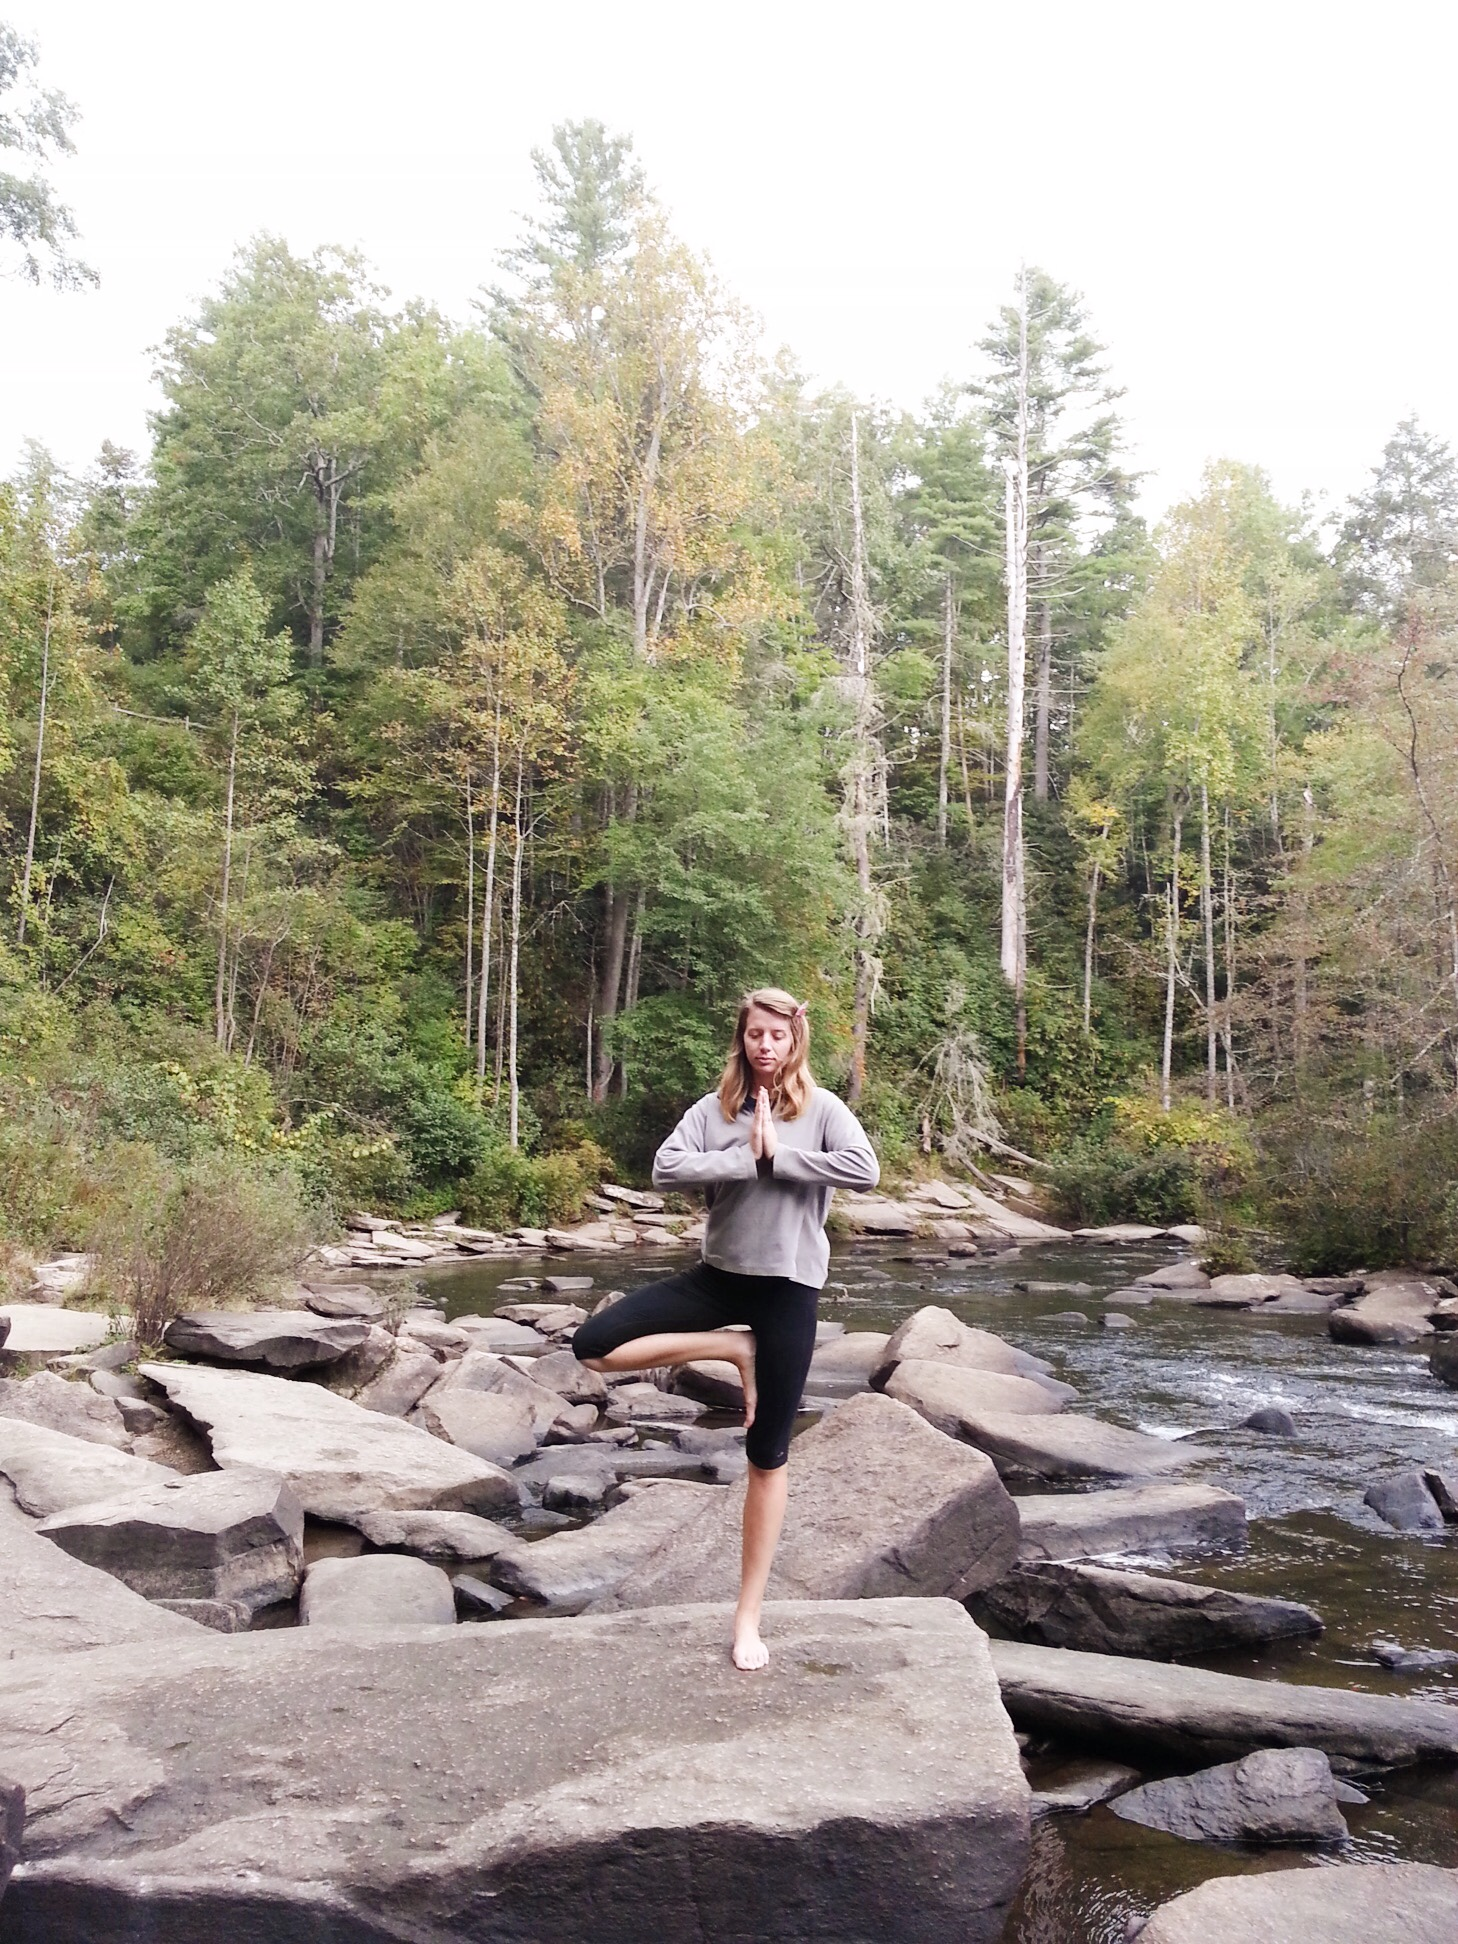 Yoga in nature at the bottom of a waterfall. Asheville, NC. 2014.